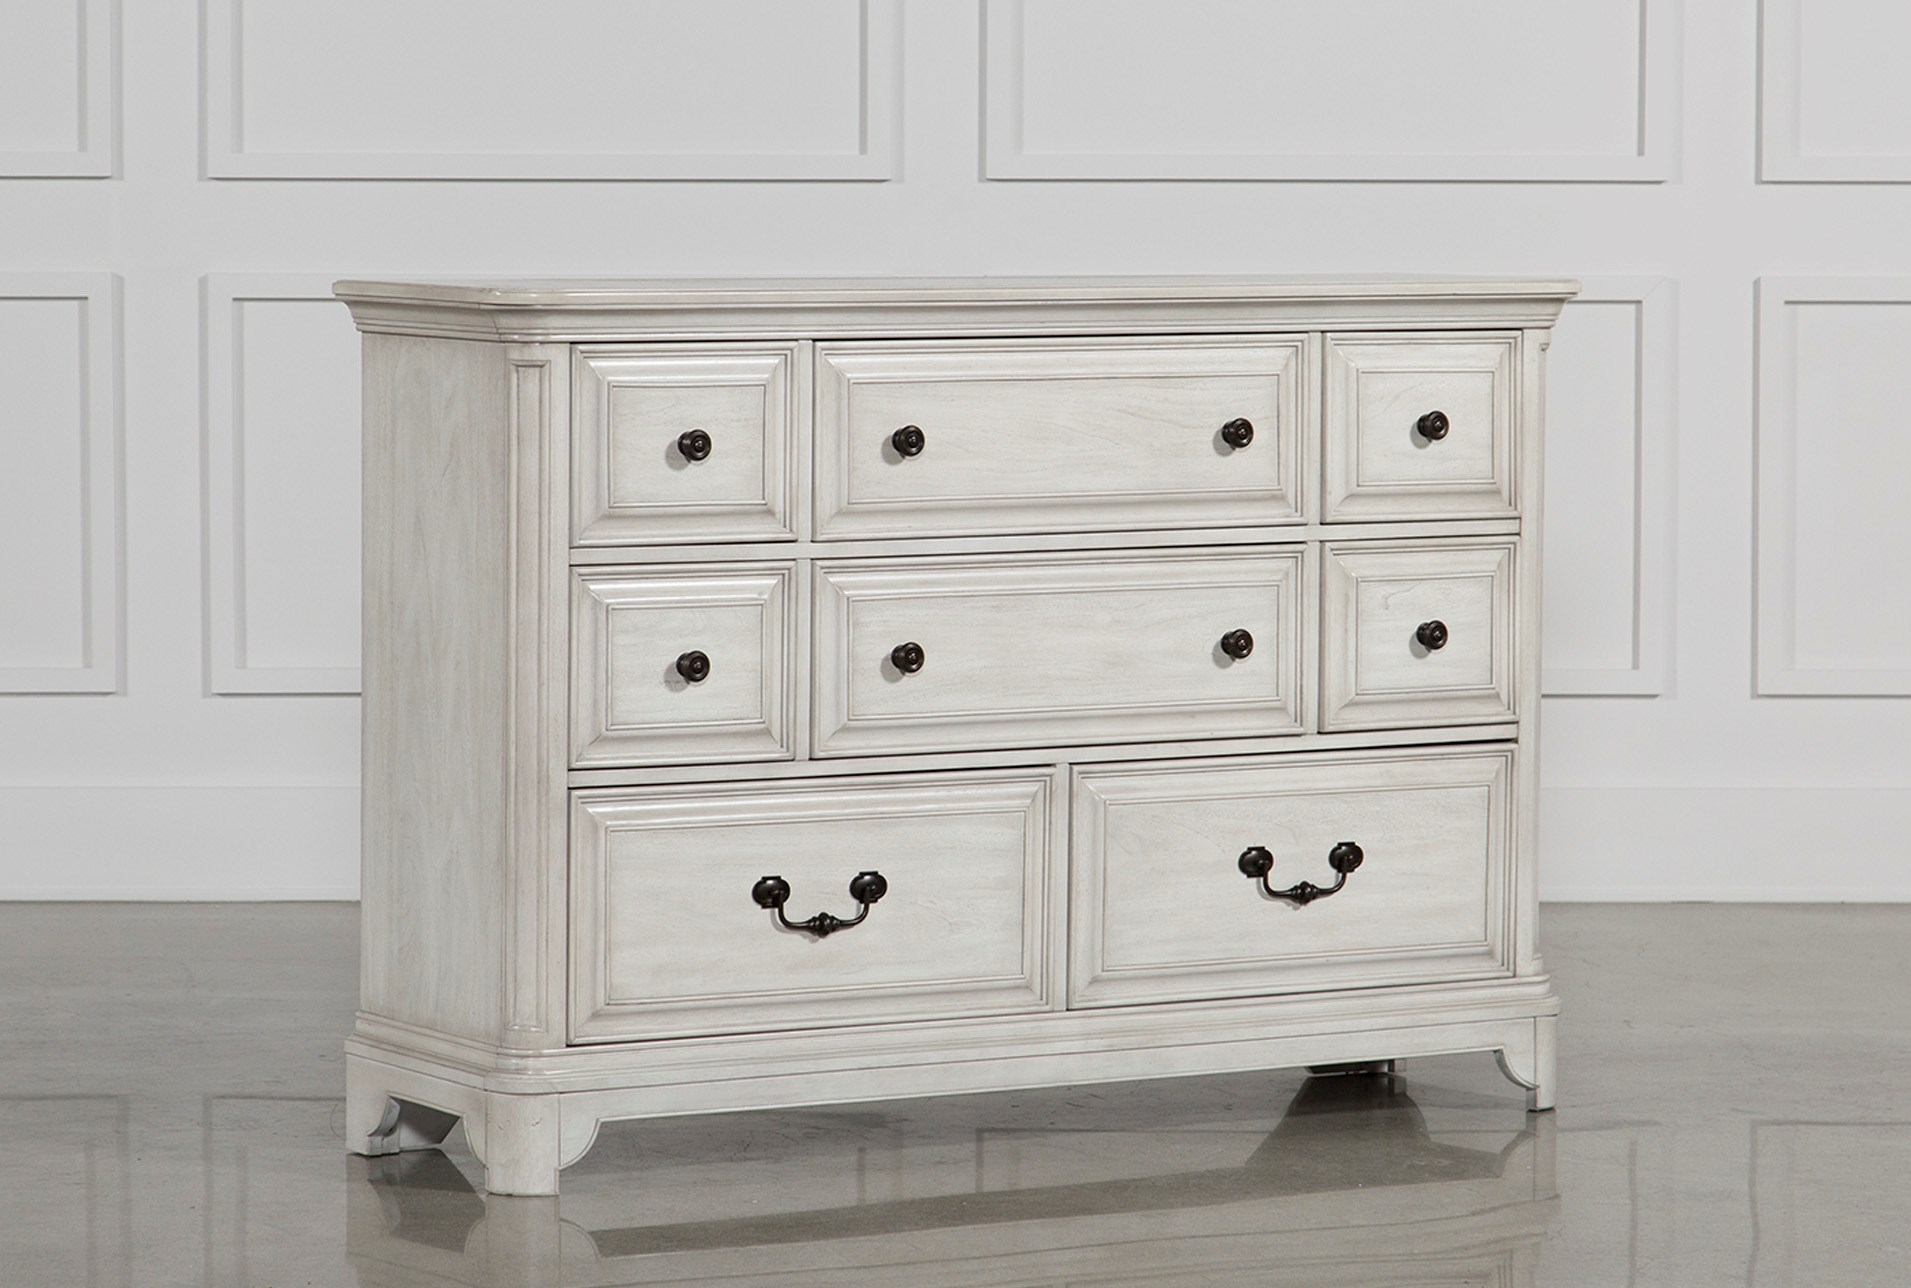 Kincaid Dresser Qty 1 Has Been Successfully Added To Your Cart